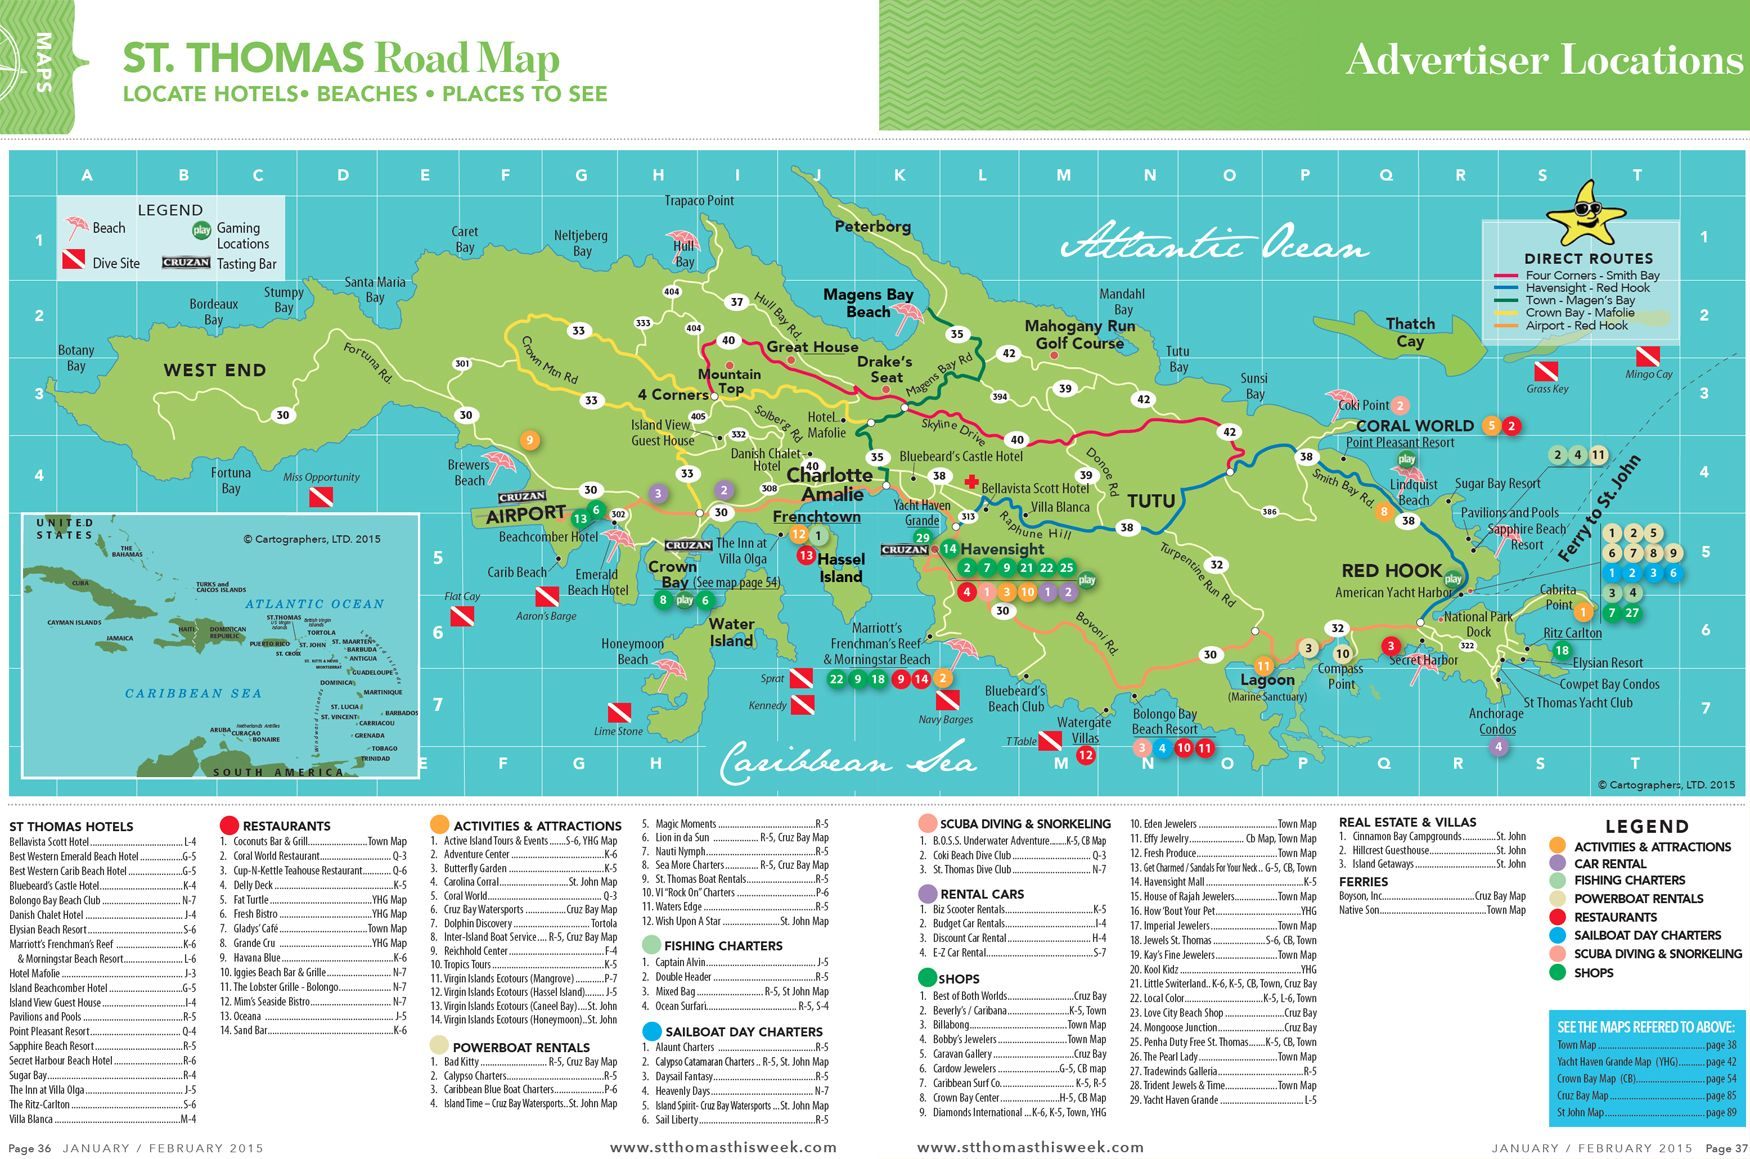 St. Thomas Island Road Map | Vacation destinations in 2019 ...